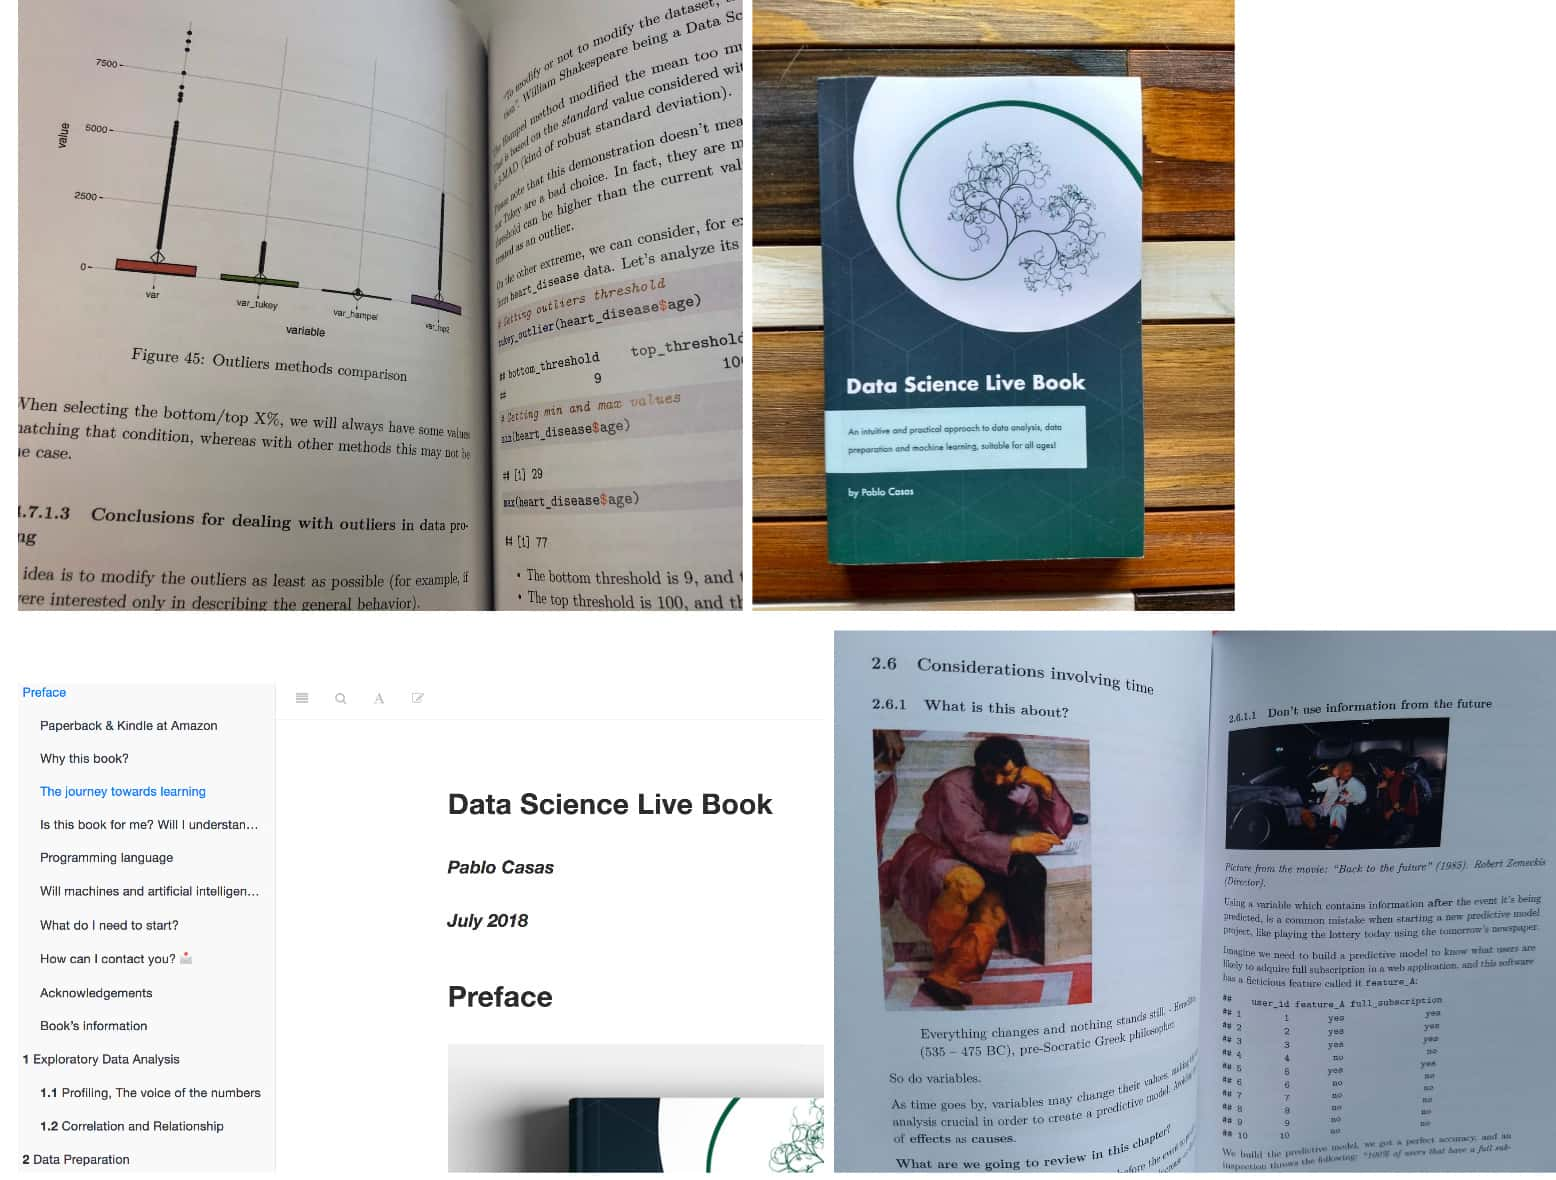 data-science-live-book